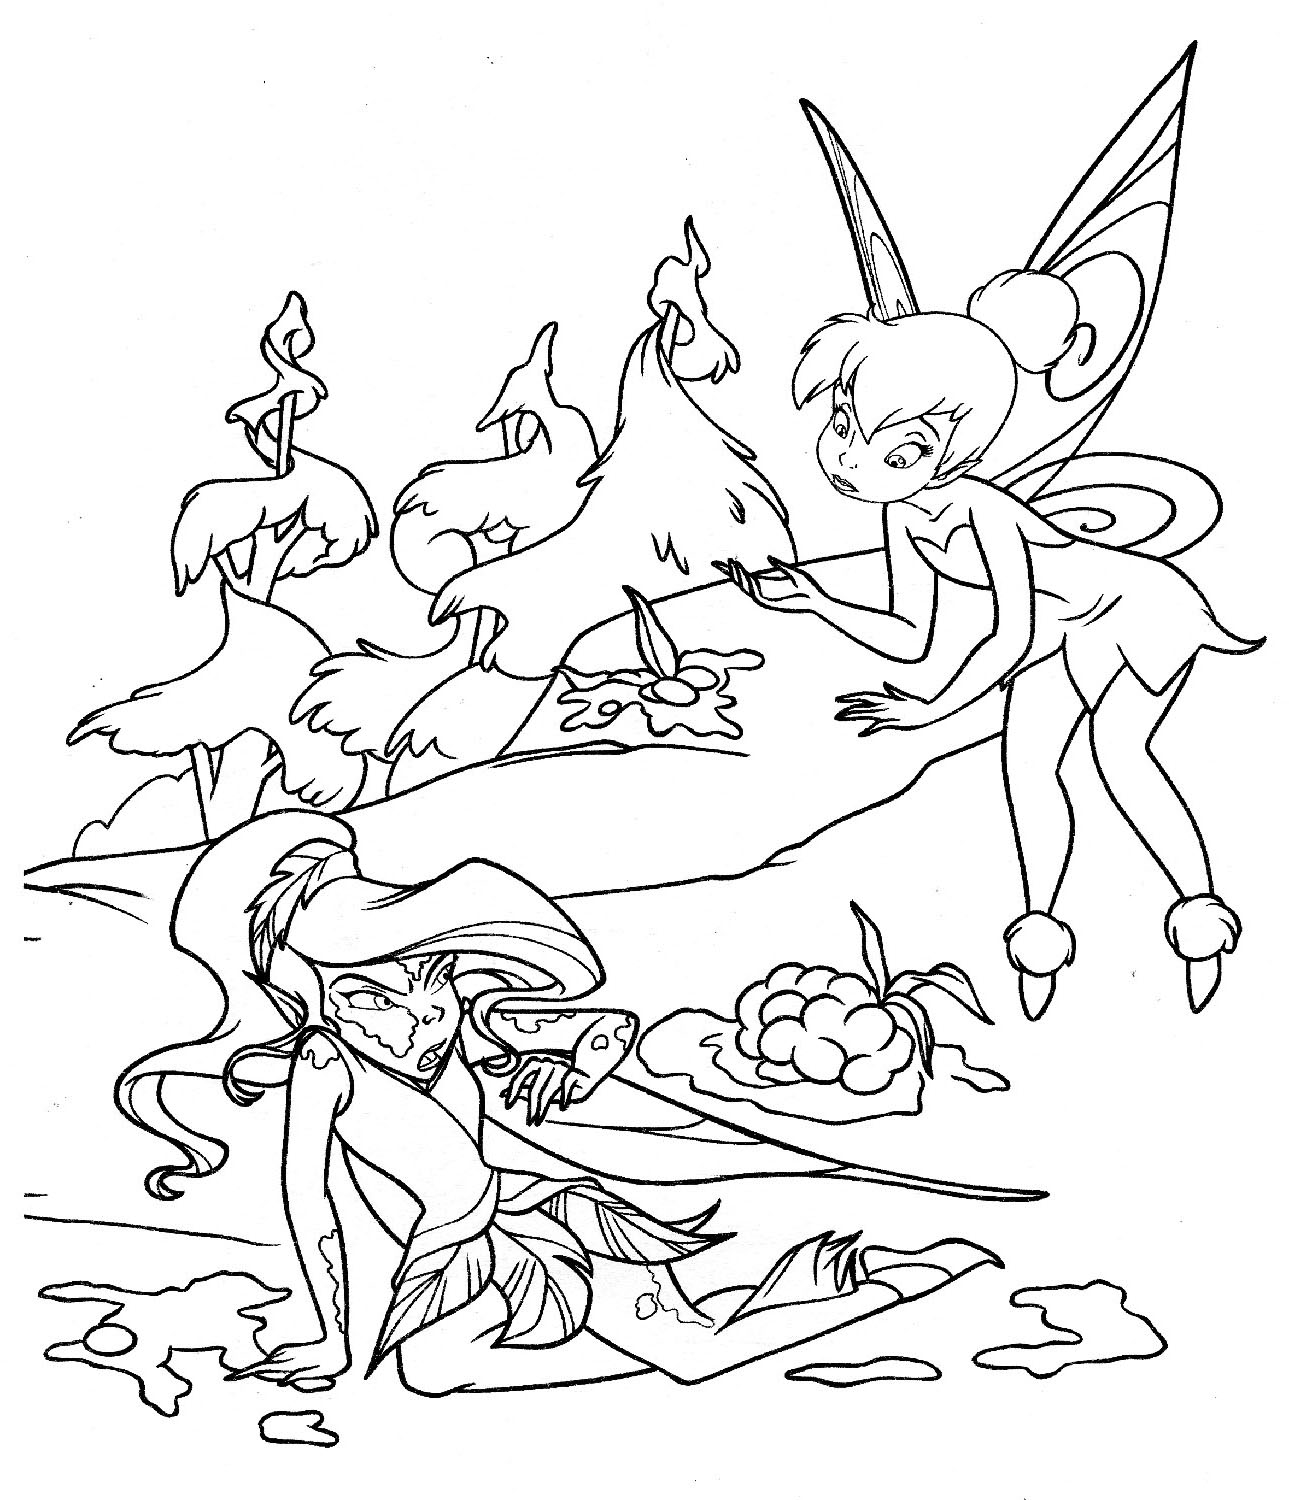 pixiehollow coloring pages - photo#1